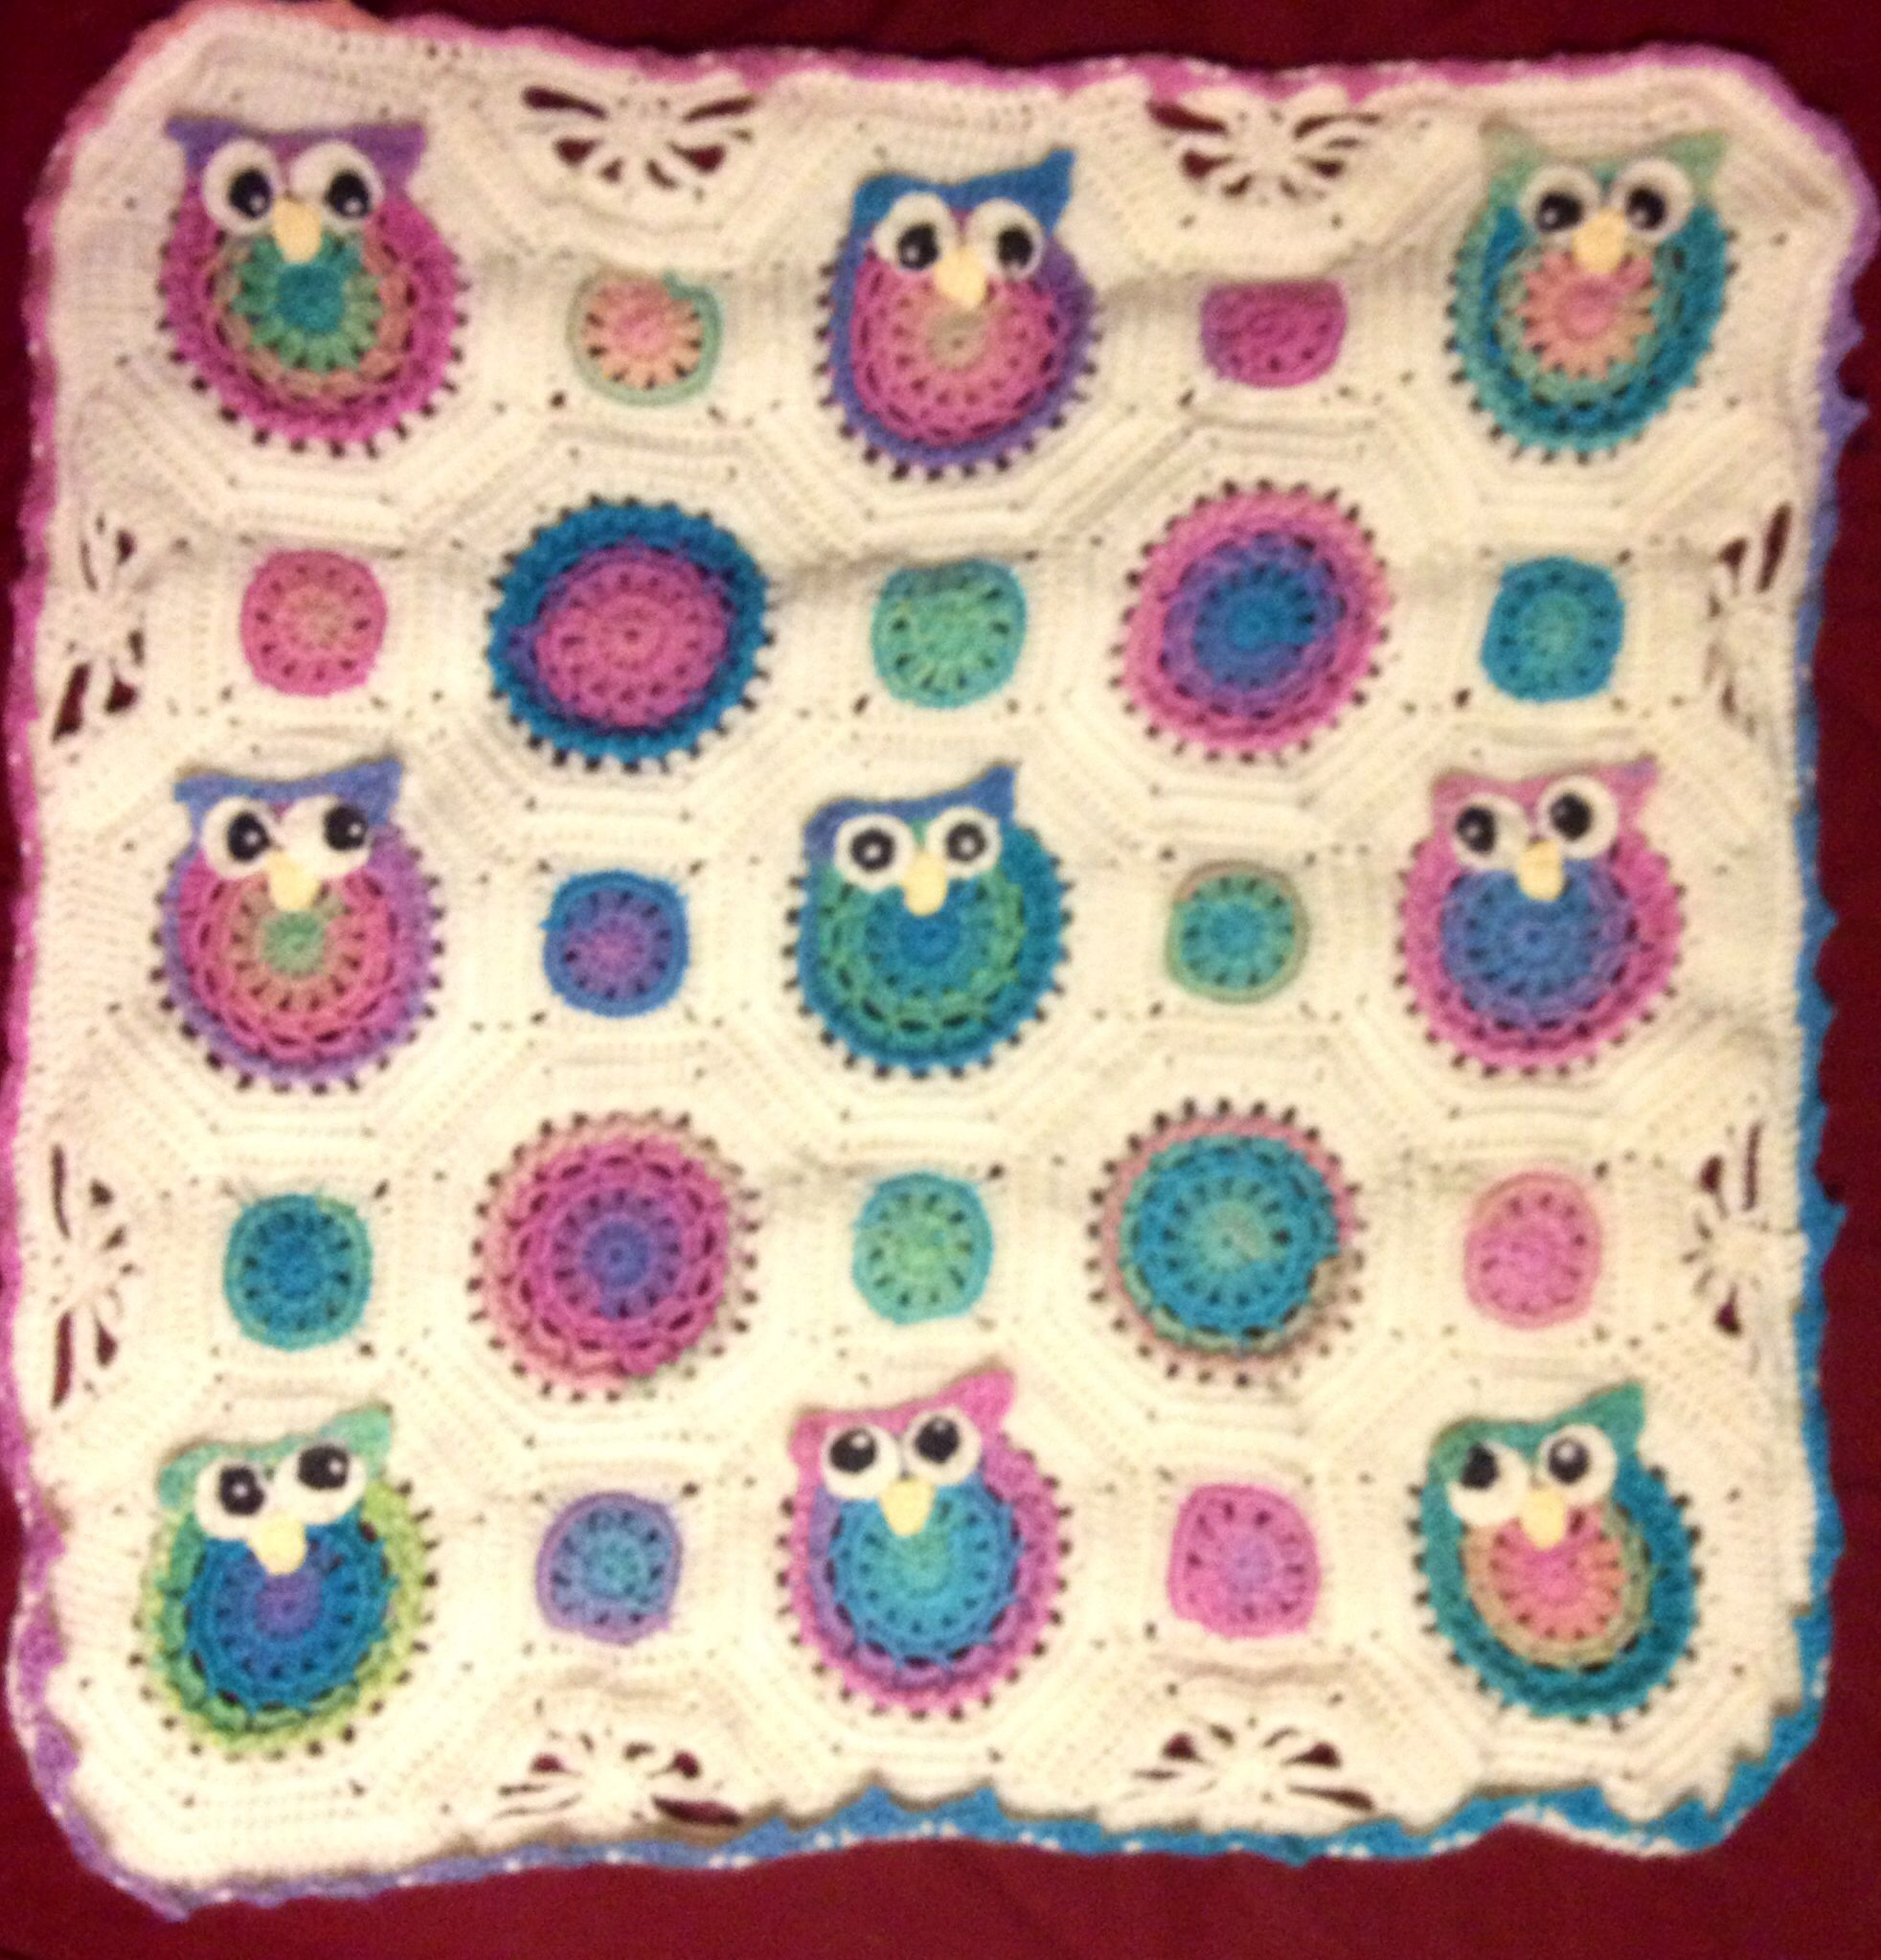 Owl crochet baby blanket crochet creations by rebecca monroe owl crochet baby blanket i would definitely use different colors the pattern is super cute though bankloansurffo Image collections